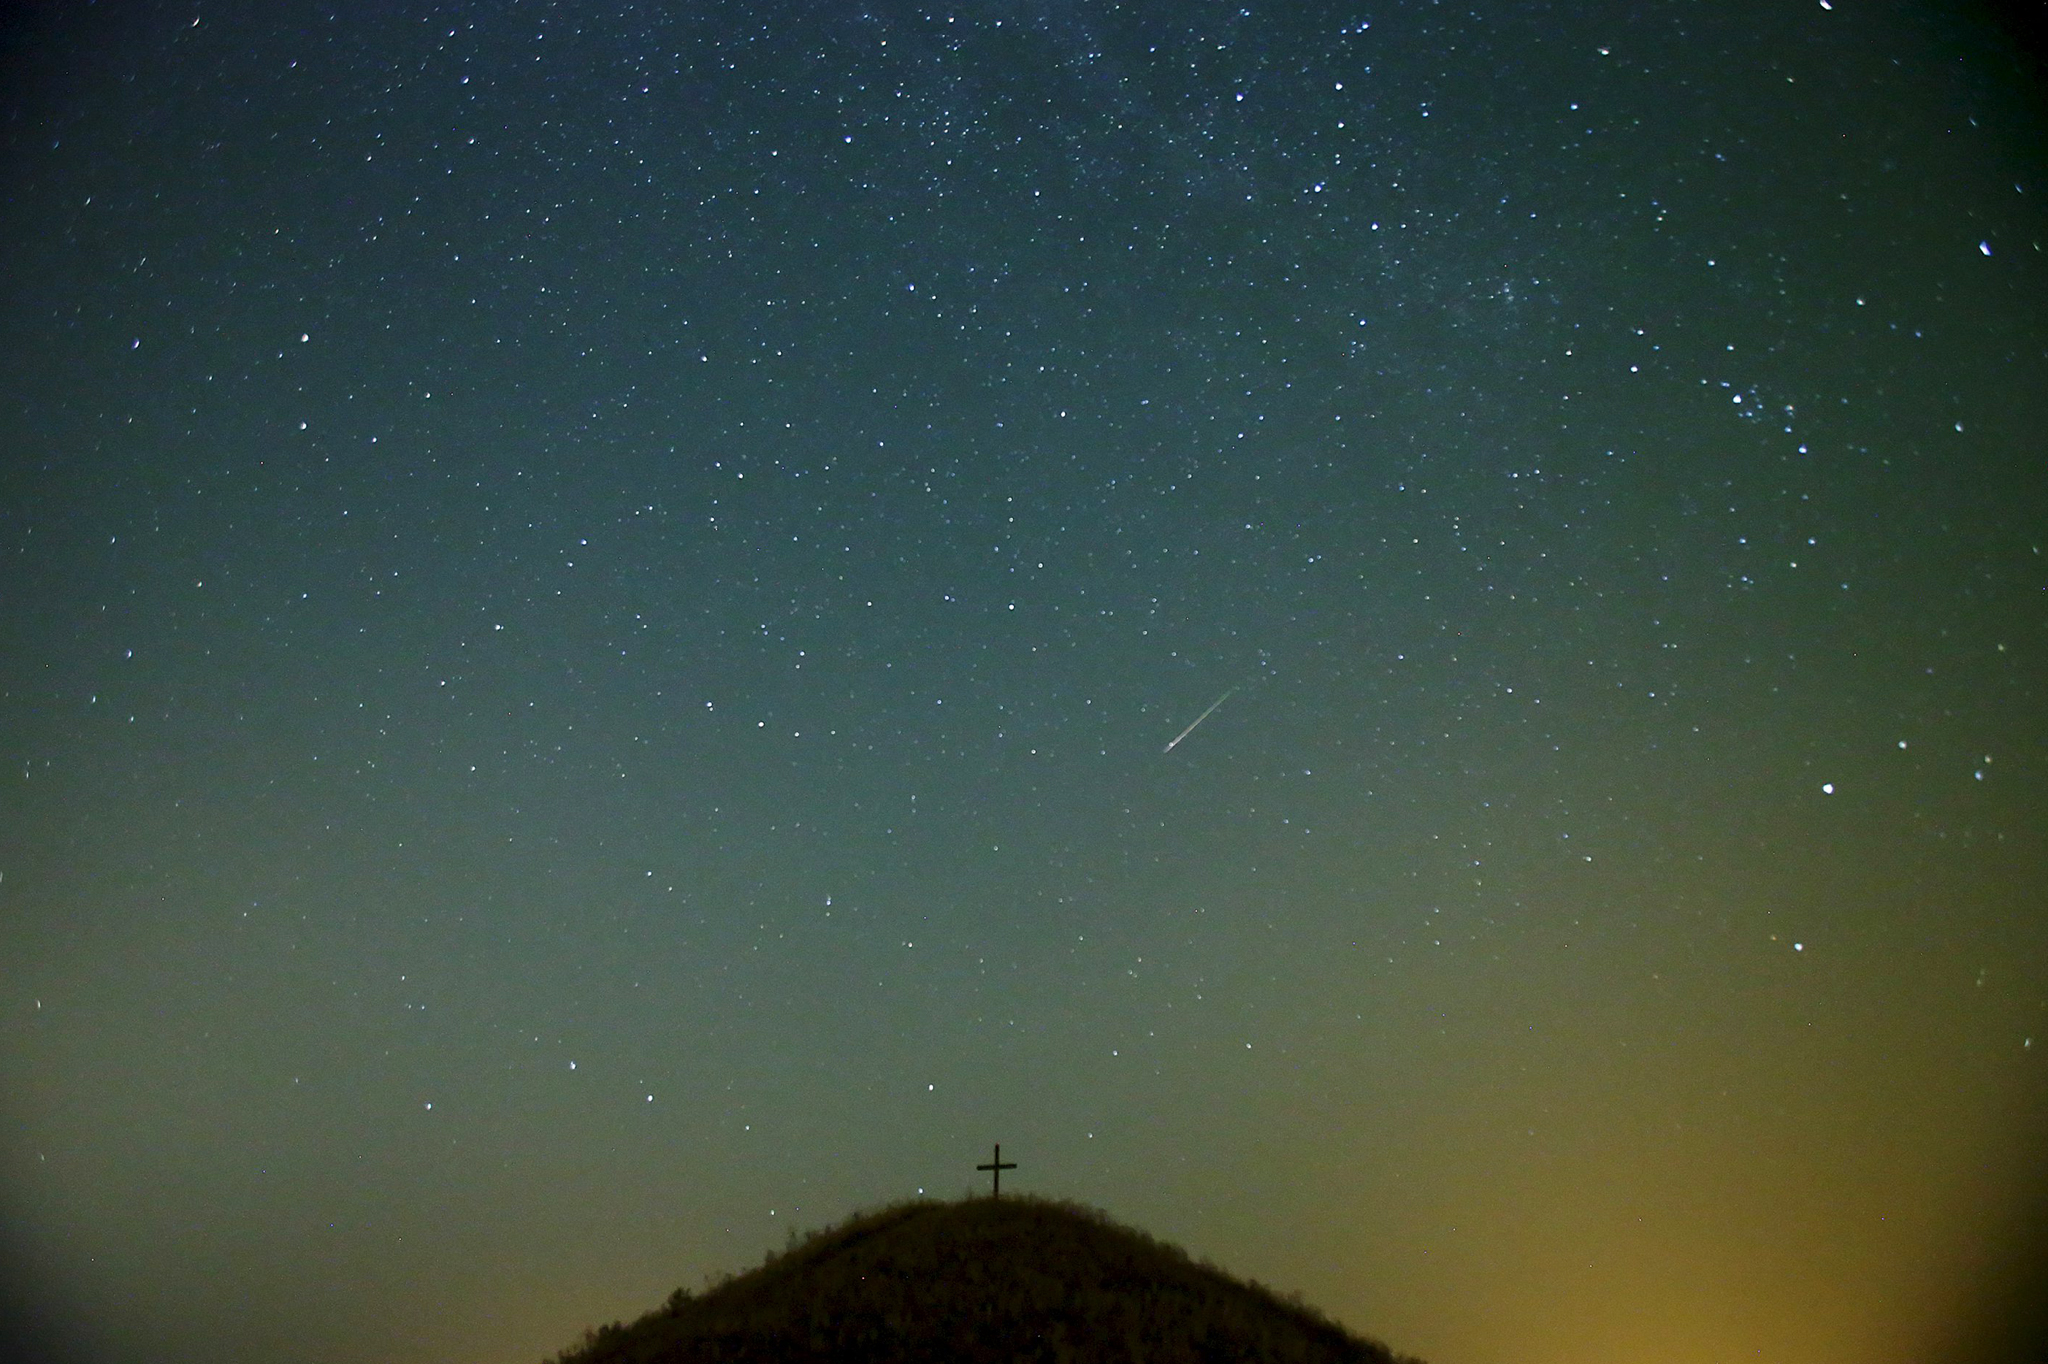 "A meteor streaks across the sky over Leeberg hill during the Perseid meteor shower near Grossmugl...ATTENTION EDITORS - REUTERS PICTURE HIGHLIGHTA meteor streaks across the sky over Leeberg hill during the Perseid meteor shower near Grossmugl in the early morning of August 13, 2015. The annual Perseid meteor shower reaches its peak on August 12 and 13 in Europe, according to NASA. REUTERS/Heinz-Peter Bader       TPX IMAGES OF THE DAYREUTERS NEWS PICTURES HAS NOW MADE IT EASIER TO FIND THE BEST PHOTOS FROM THE MOST IMPORTANT STORIES AND TOP STANDALONES EACH DAY. Search for ""TPX"" in the IPTC Supplemental Category field or ""IMAGES OF THE DAY"" in the Caption field and you will find a selection of 80-100 of our daily Top Pictures.REUTERS NEWS PICTURES. TEMPLATE OUT"